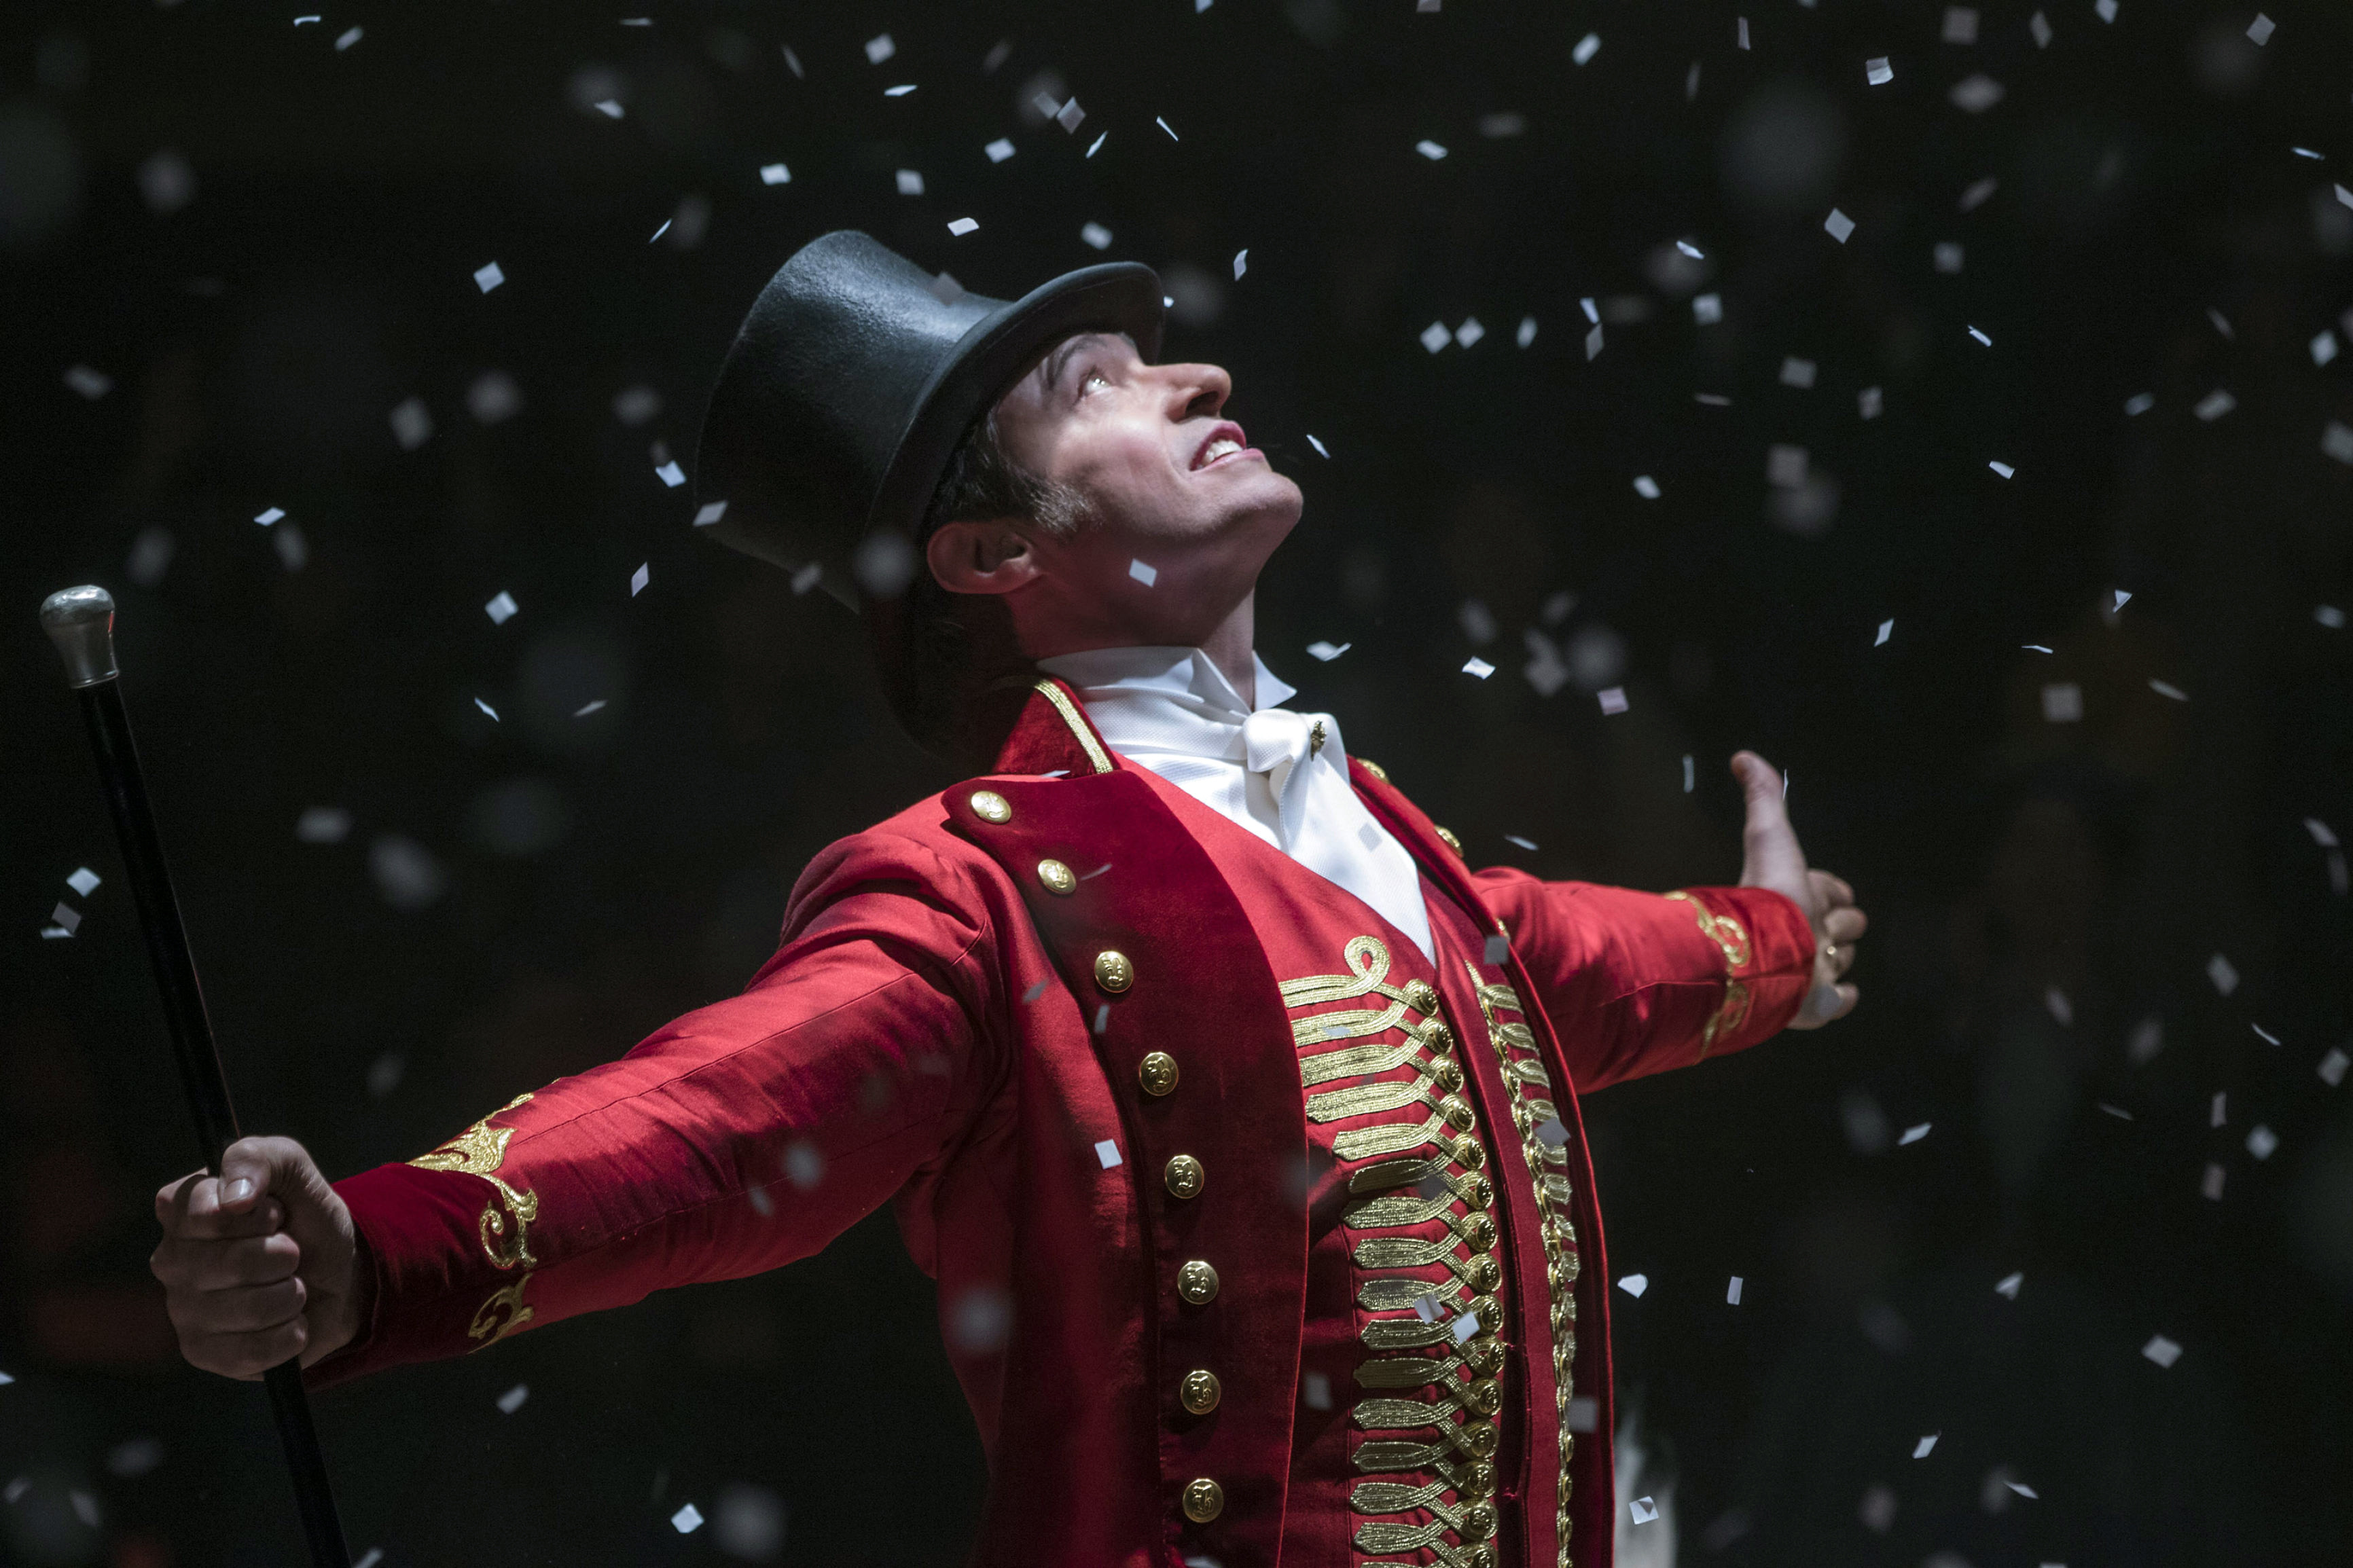 5 Reasons Why: The Greatest Showman is The Greatest Musical